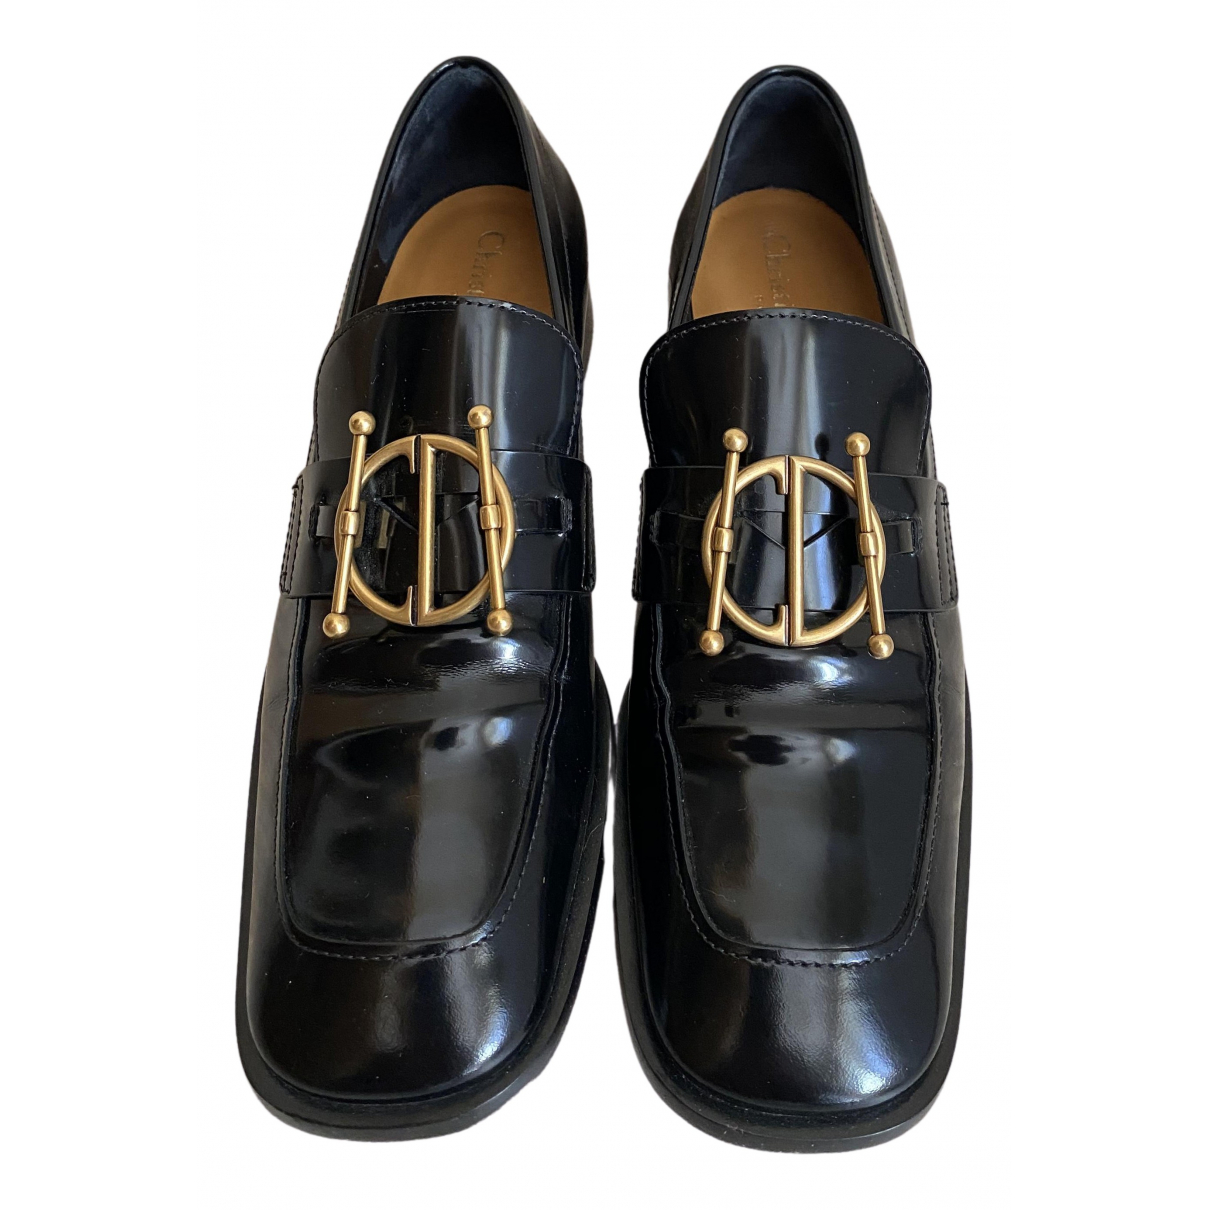 Dior DiorDirection Black Leather Flats for Women 37.5 IT